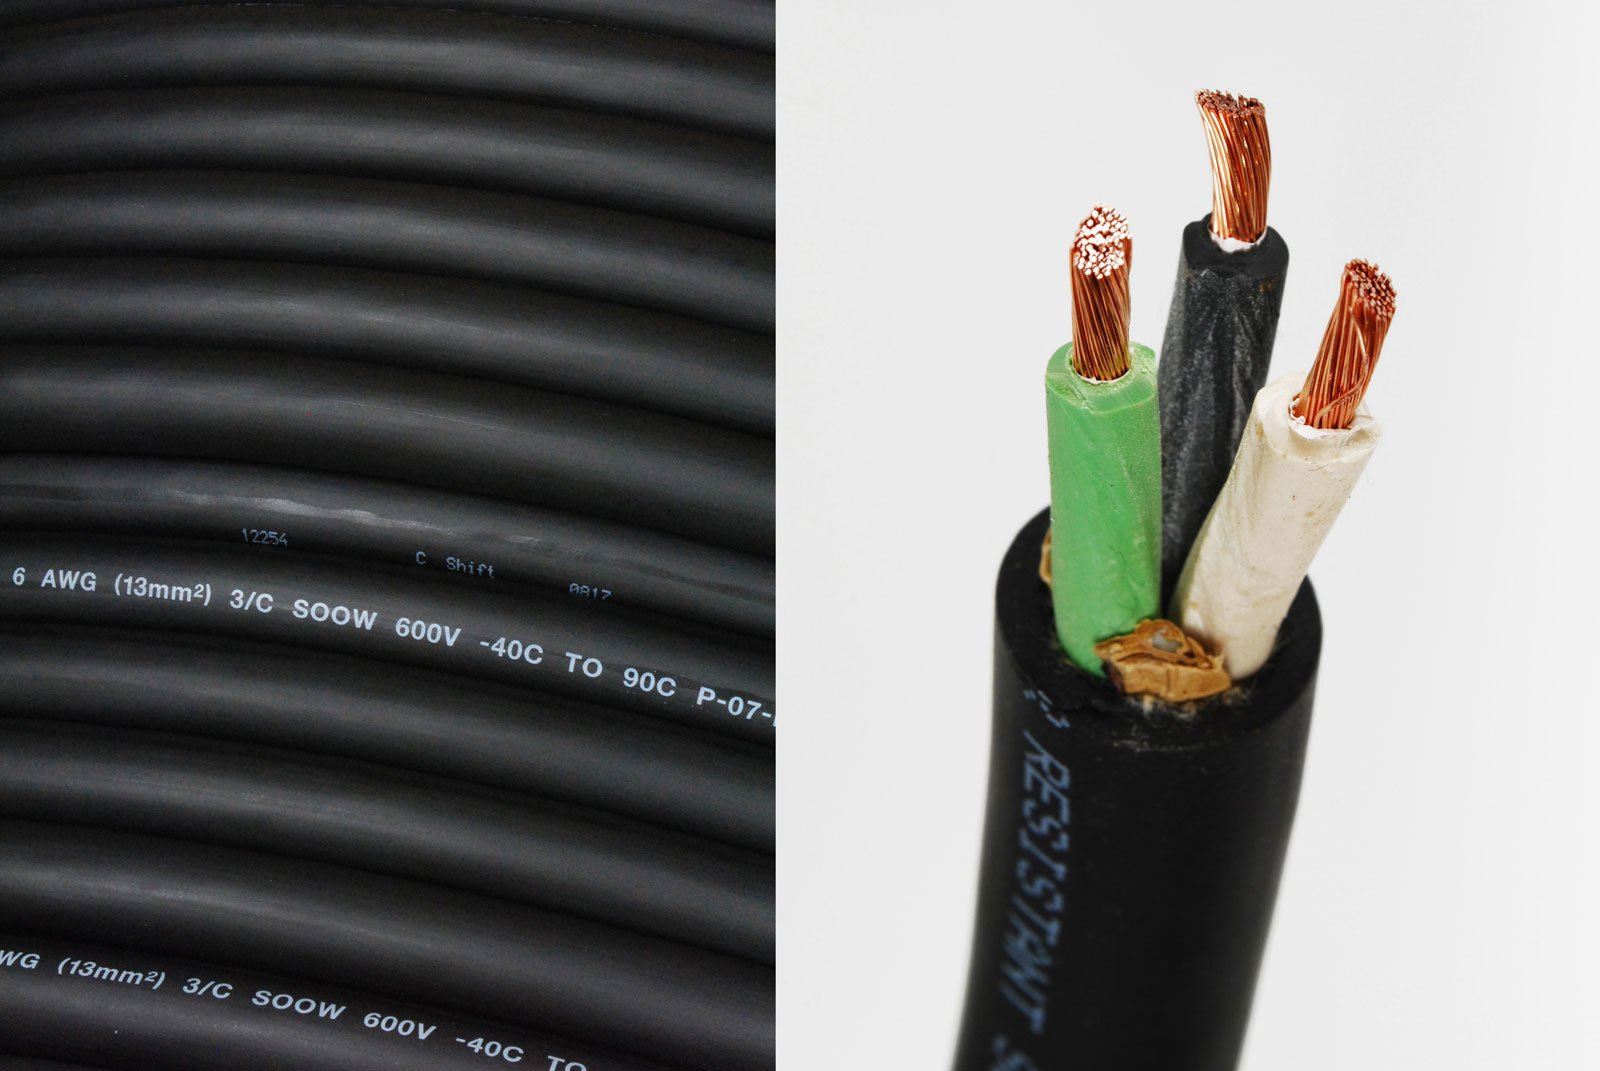 6/3 SOOW SO 600V Portable Power Cord Outdoor Durable Flexible Wire Cable (6/3 SOOW Cable, 100')